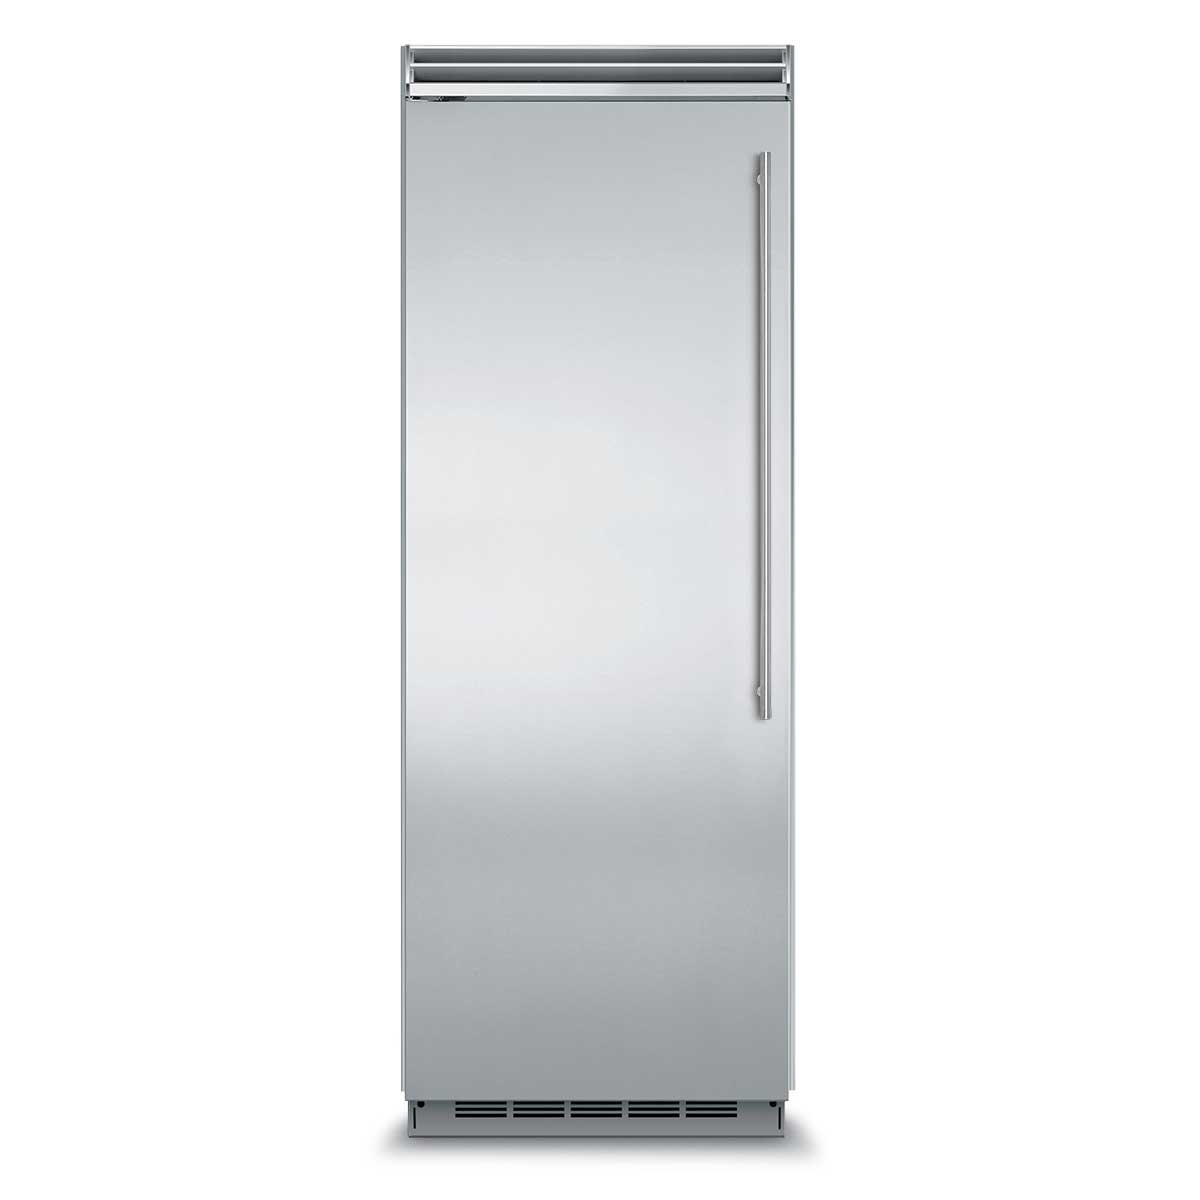 "Model: MP30FA2RS | Marvel  Marvel Professional Built-In 30"" All Freezer- Solid Stainless Steel Door   Right Hinge, Slim Designer Handle"